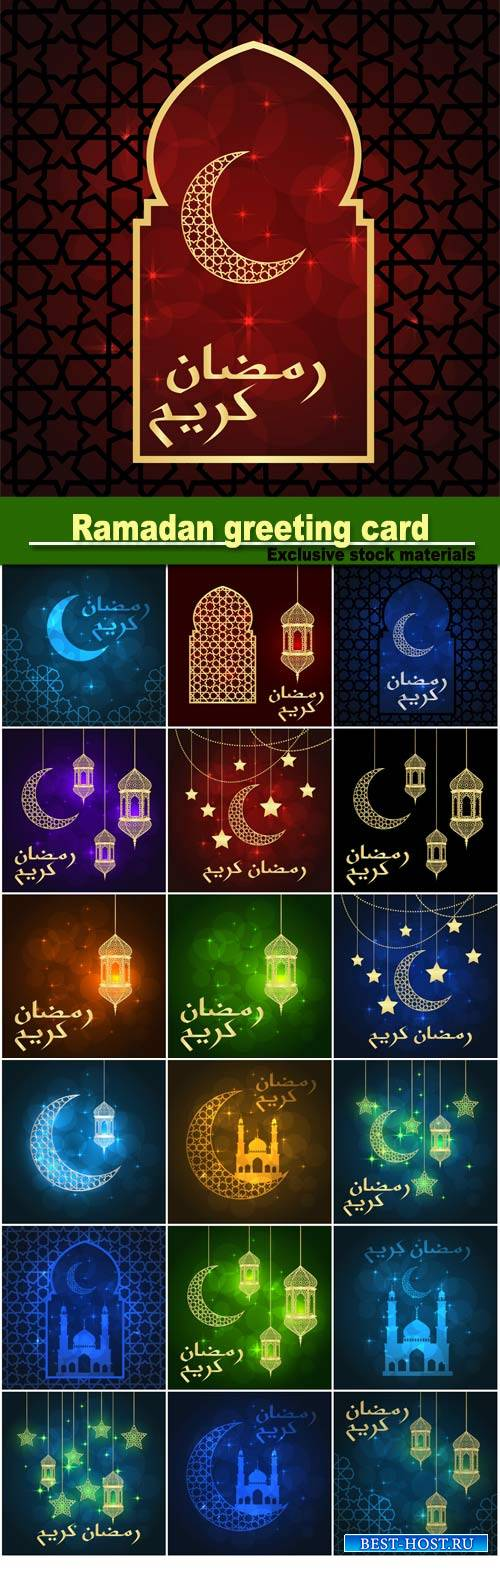 Ramadan greeting card, vector backgrounds